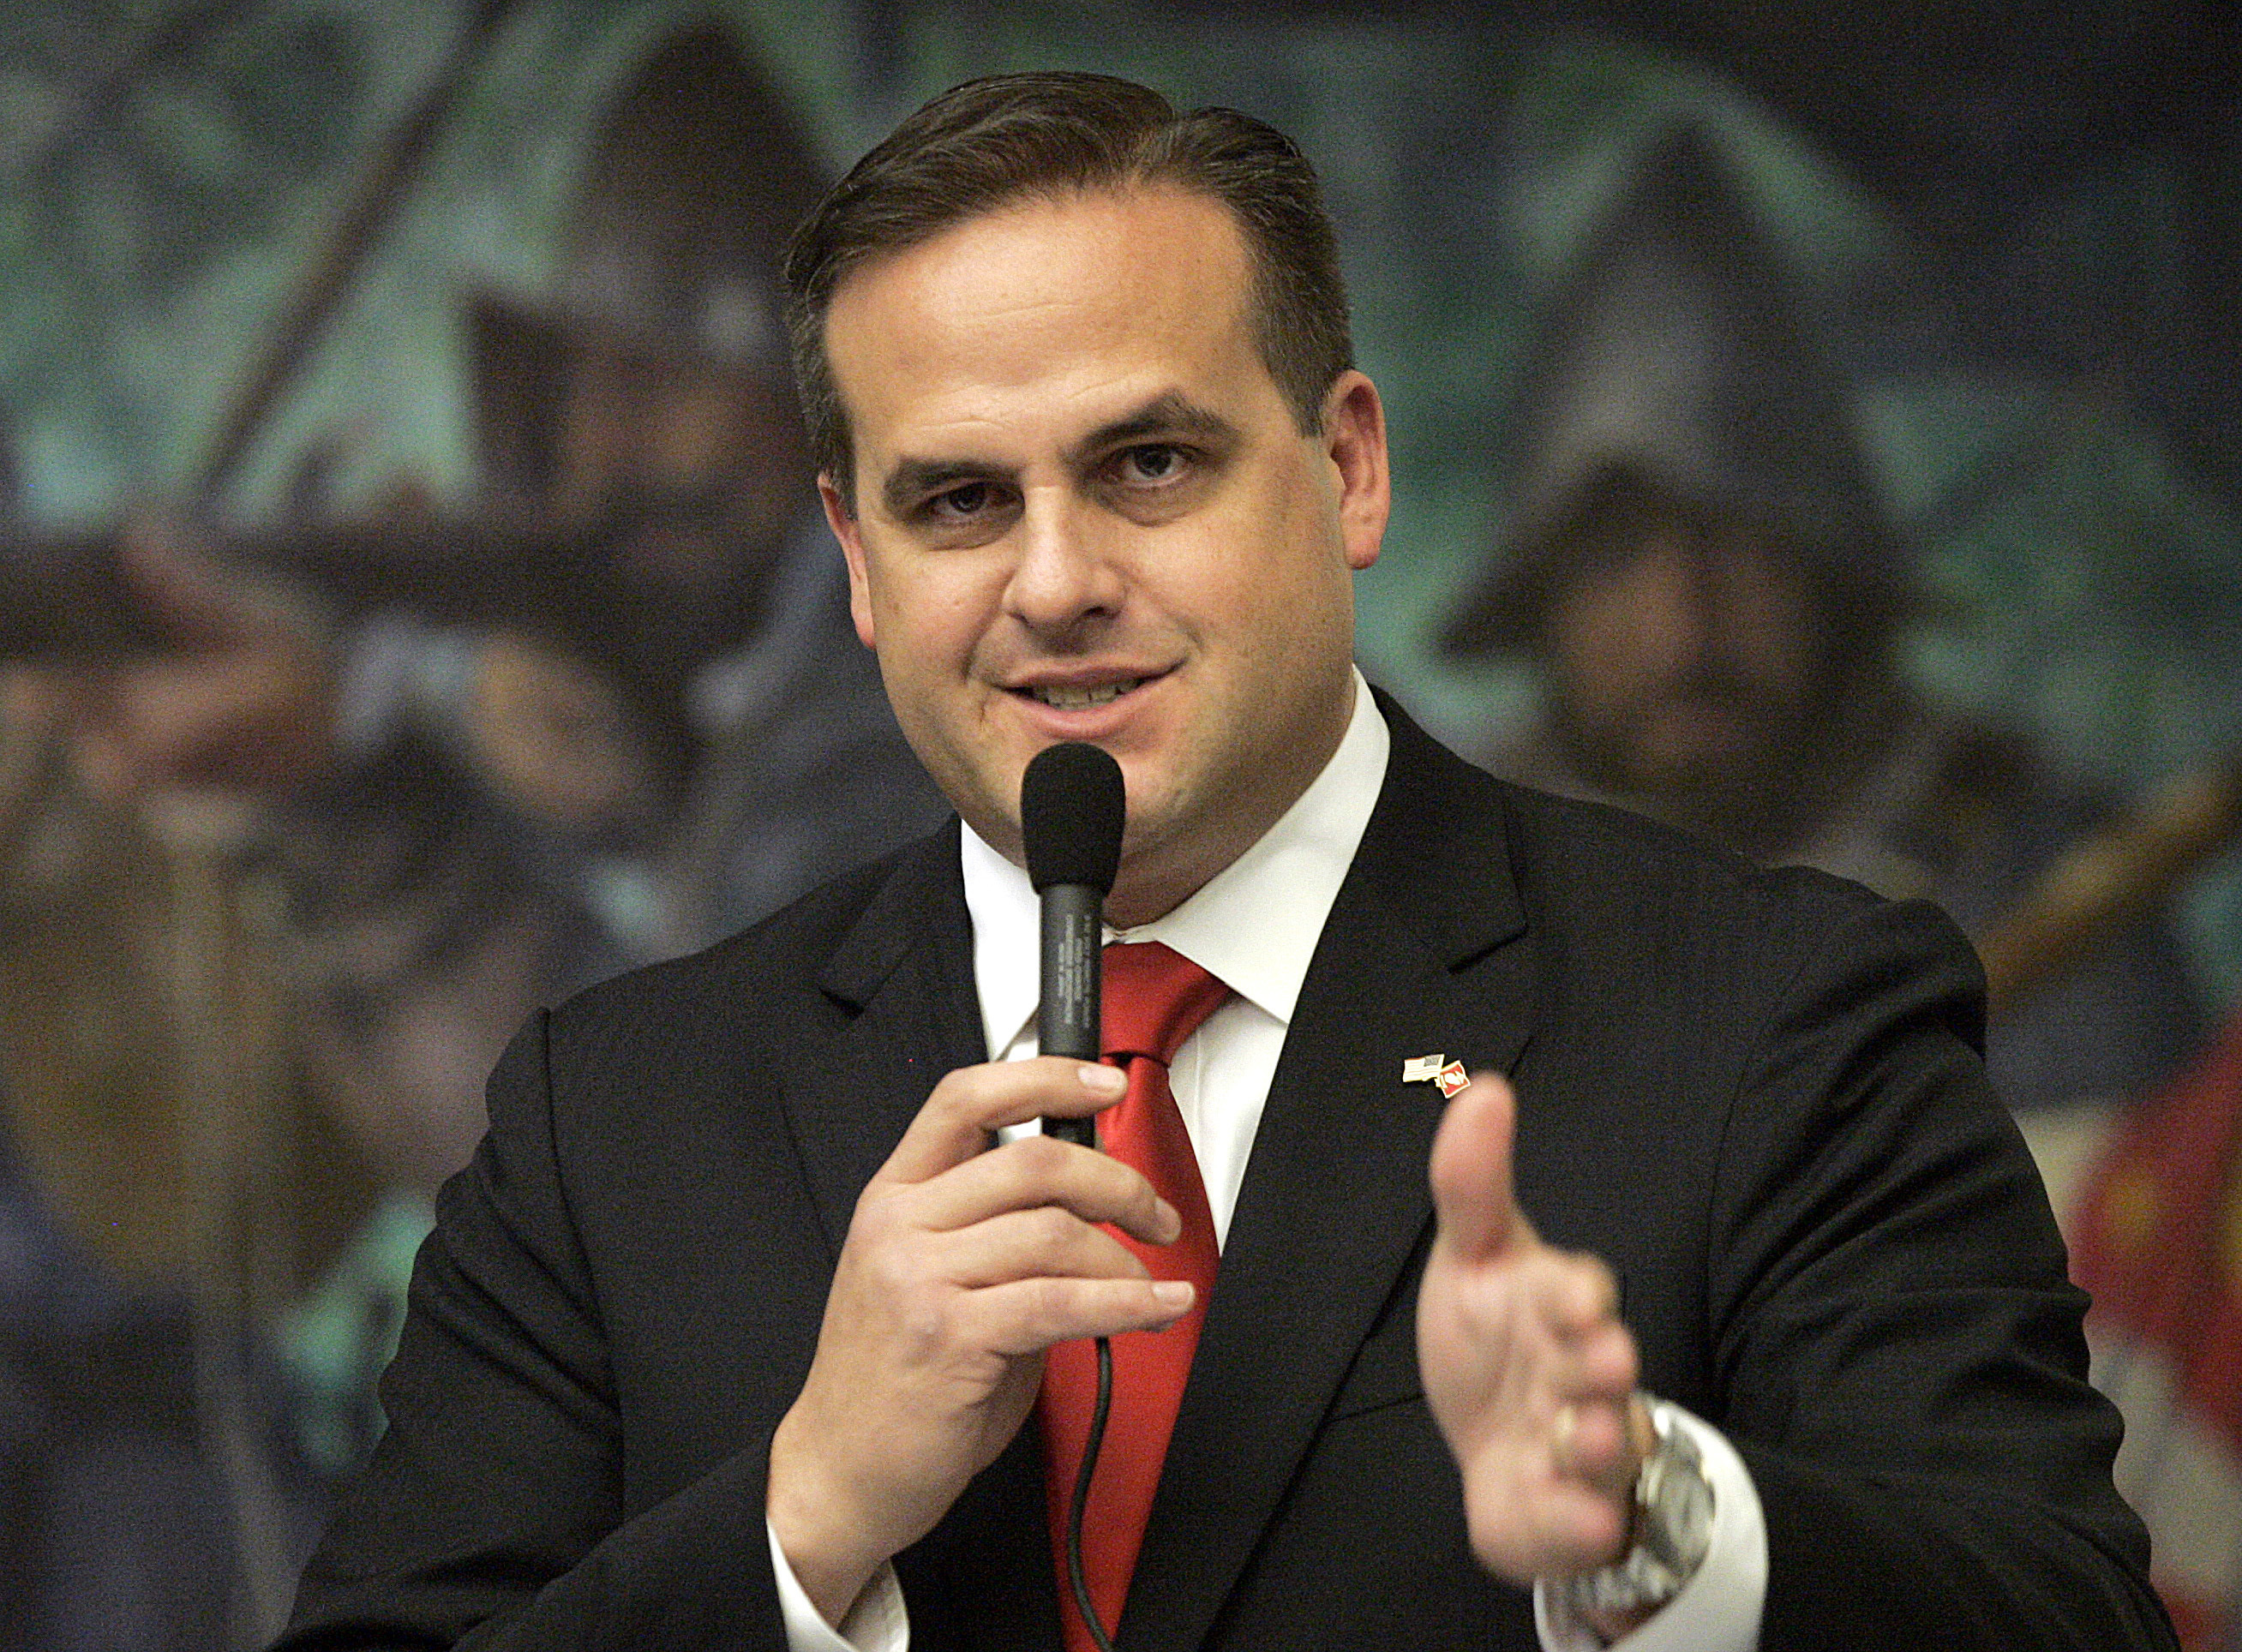 Republican state senator Frank Artiles in Tallahassee, Fla. on March 9, 2012.